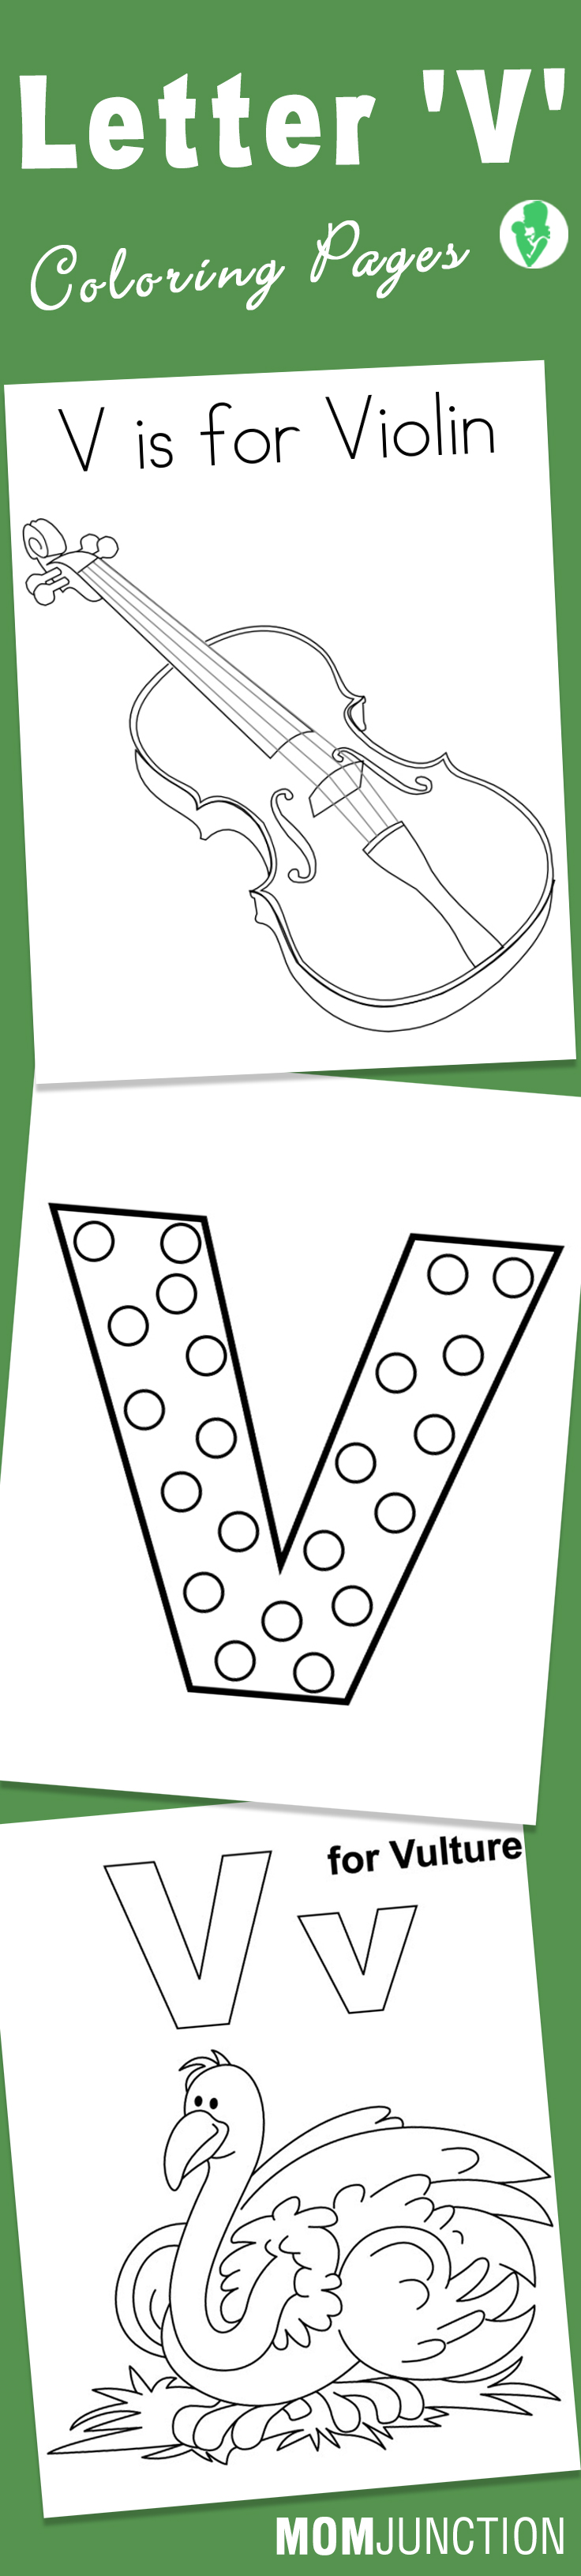 Letter v coloring pages to print - Top 10 Free Printable Letter V Coloring Pages Online